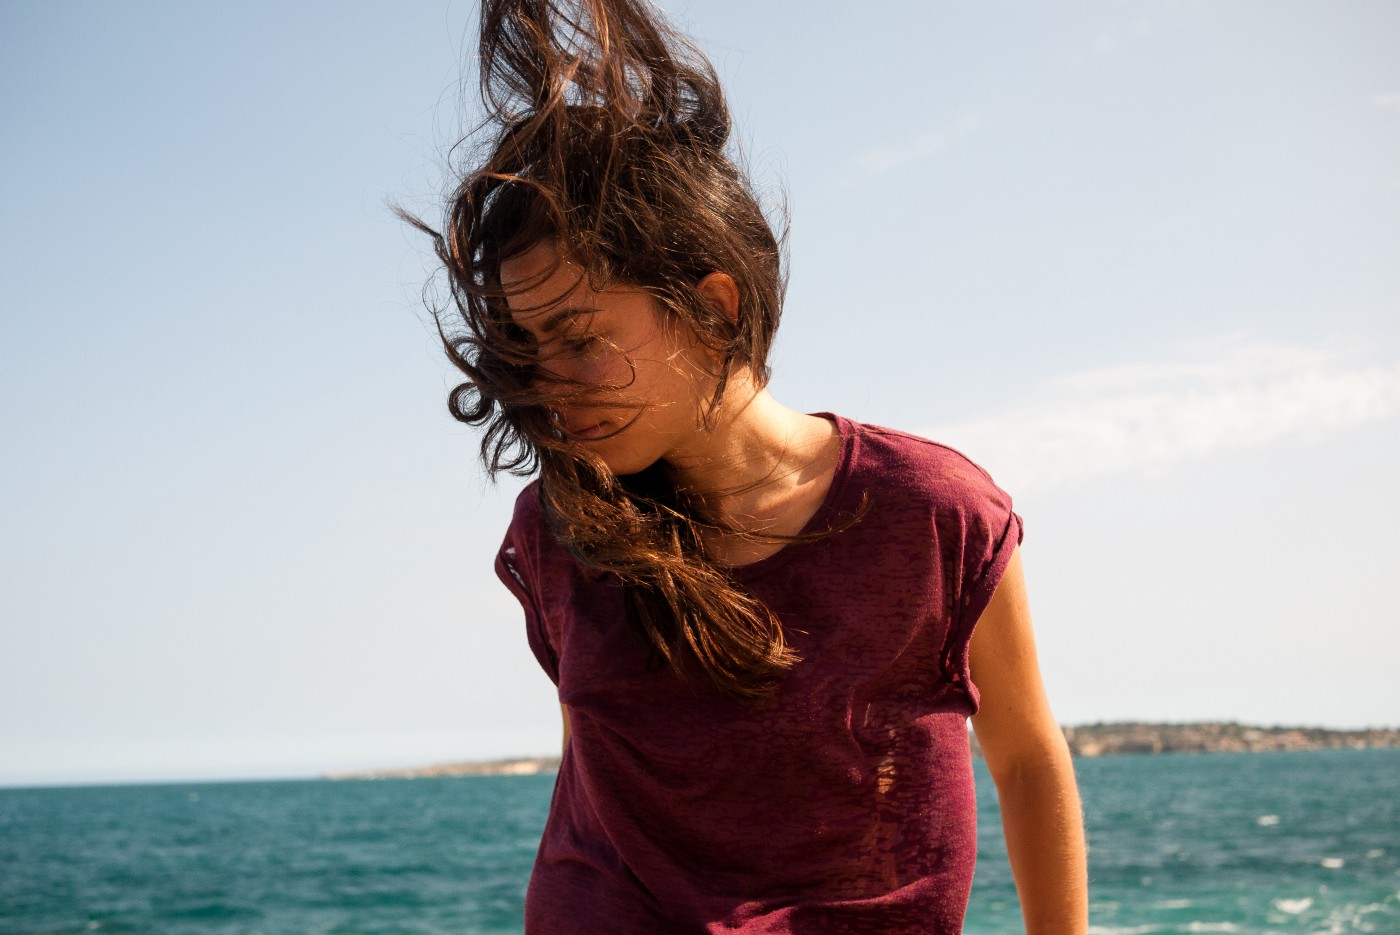 girl in a windy day